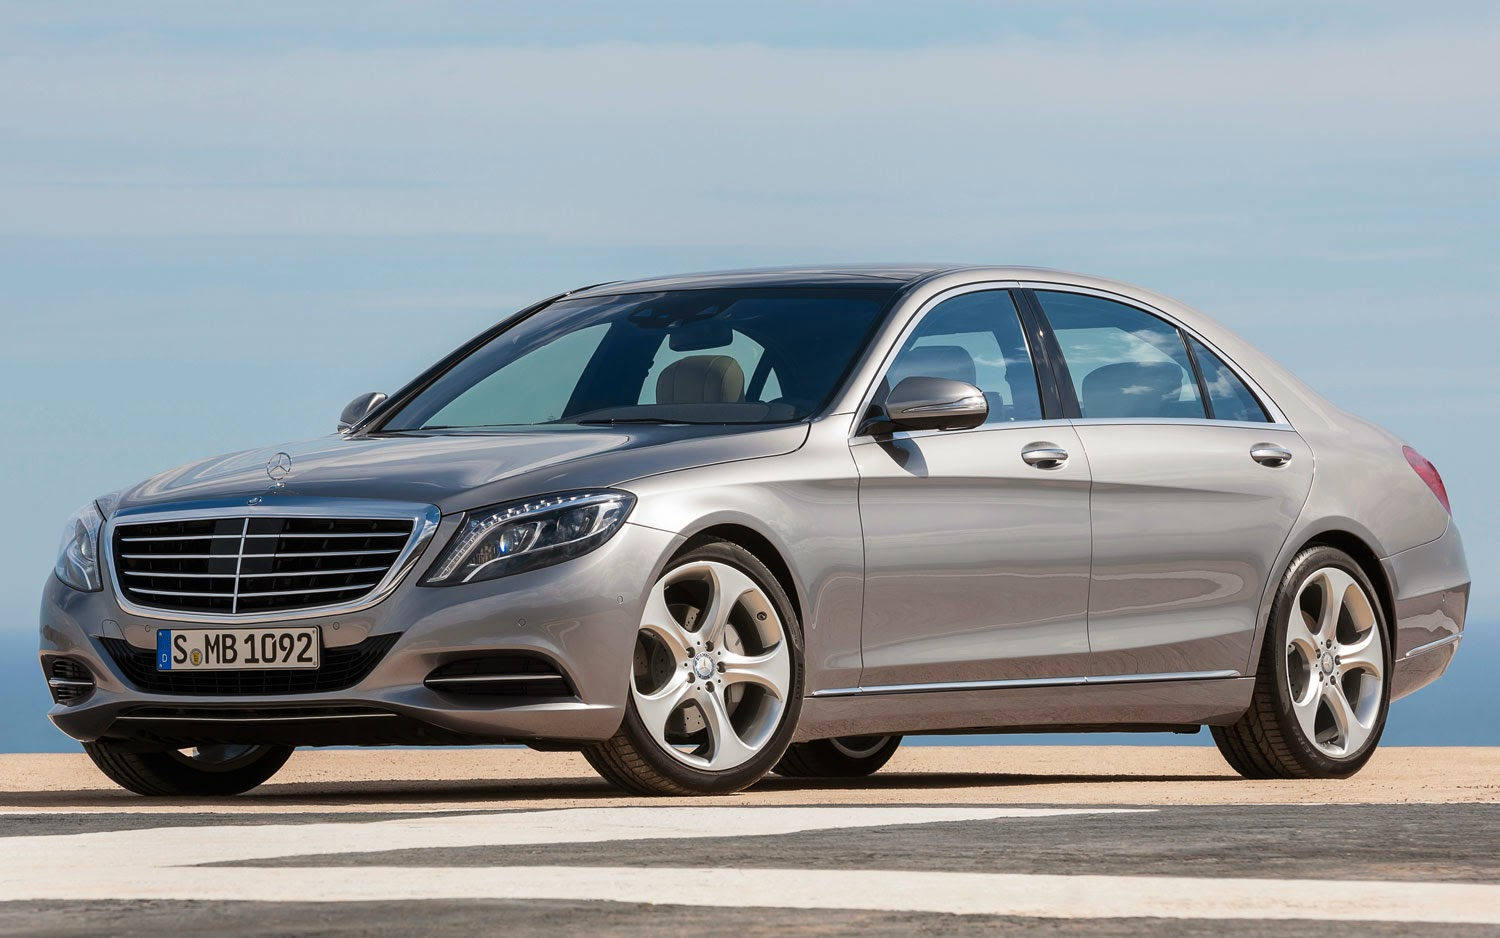 2014 mercedes benz s class review price and design. Black Bedroom Furniture Sets. Home Design Ideas